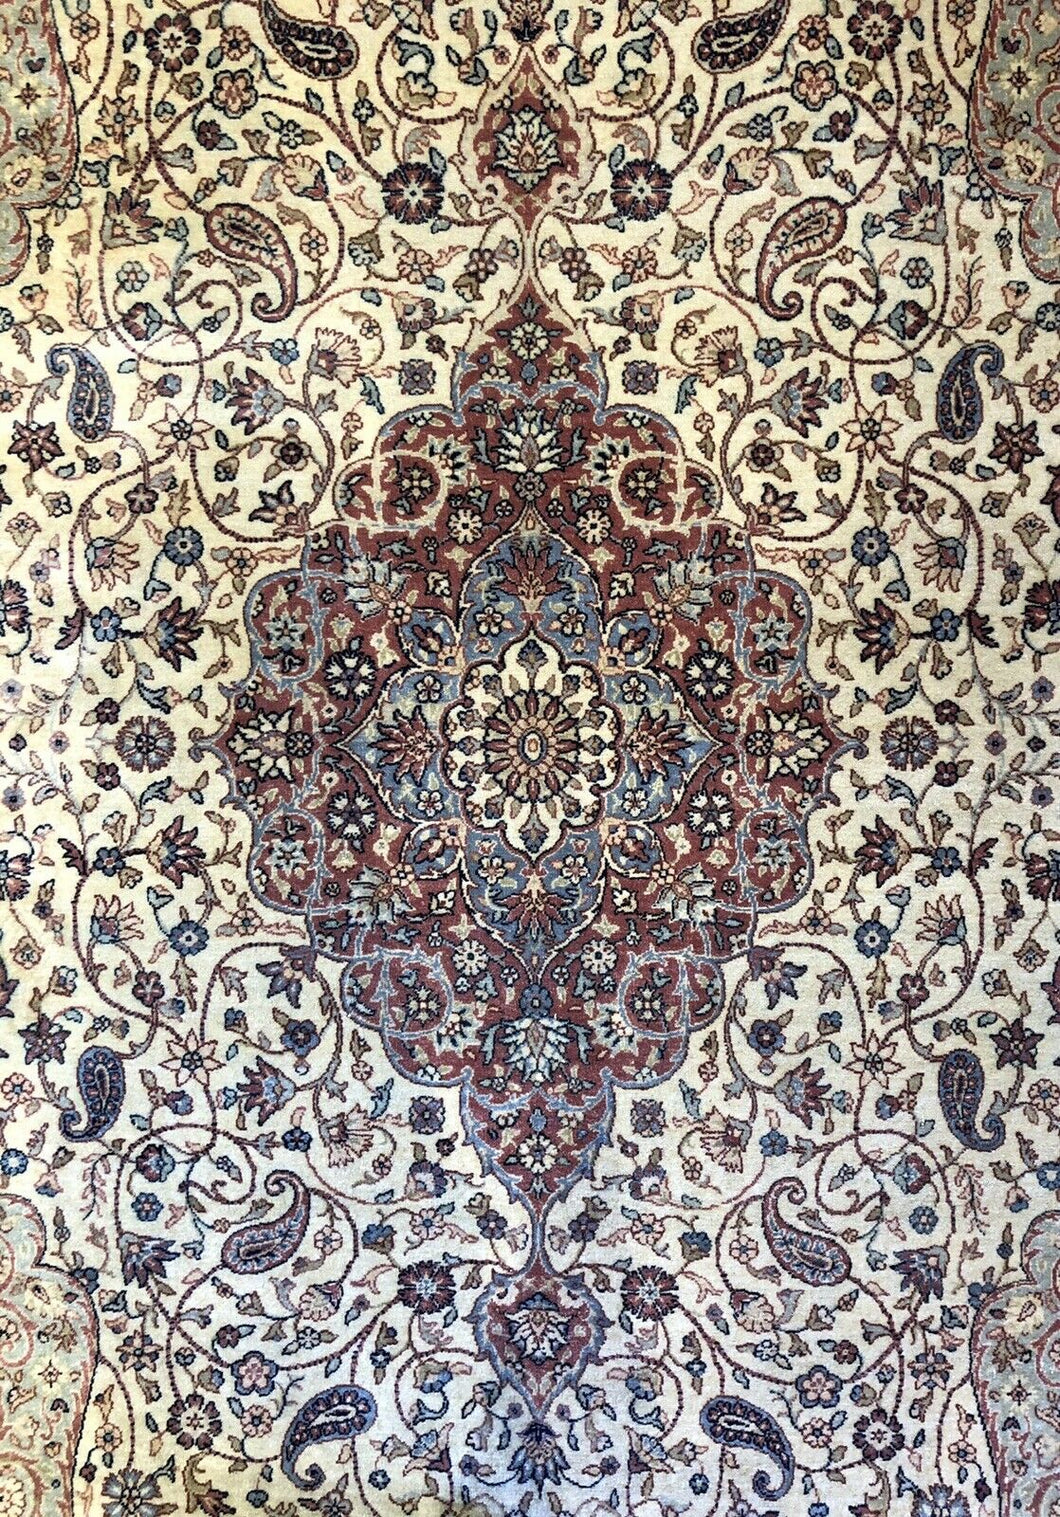 Spectacular Sivas - 1910s Antique Turkish Rug - Garden of Paradise 6'7